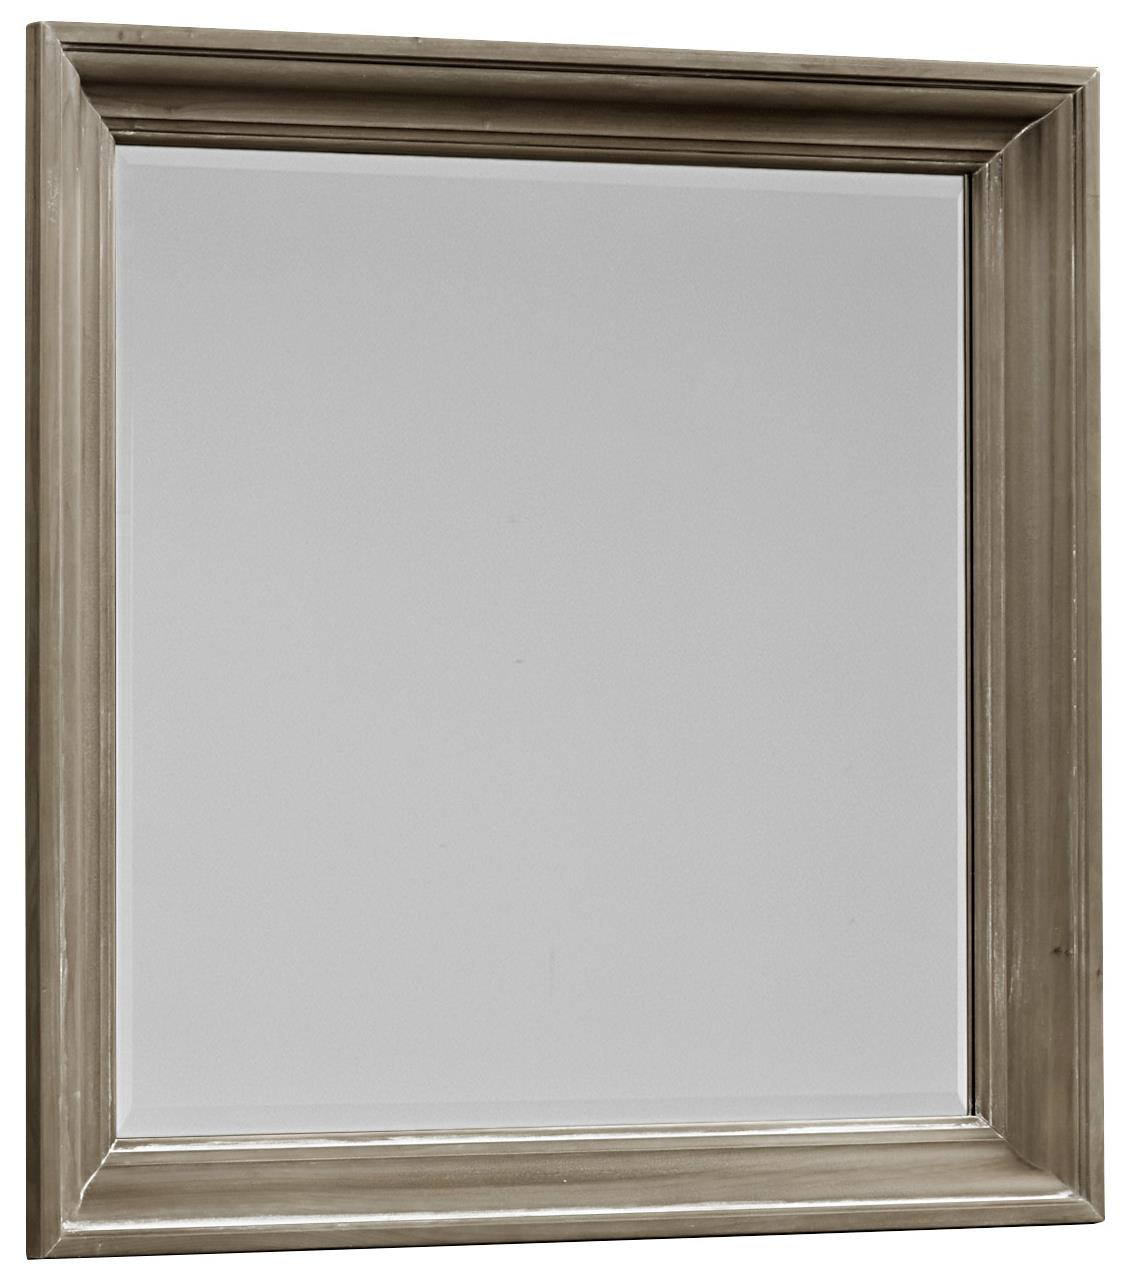 Vaughan Bassett Bedford Landscape Mirror - Item Number: BB81-445